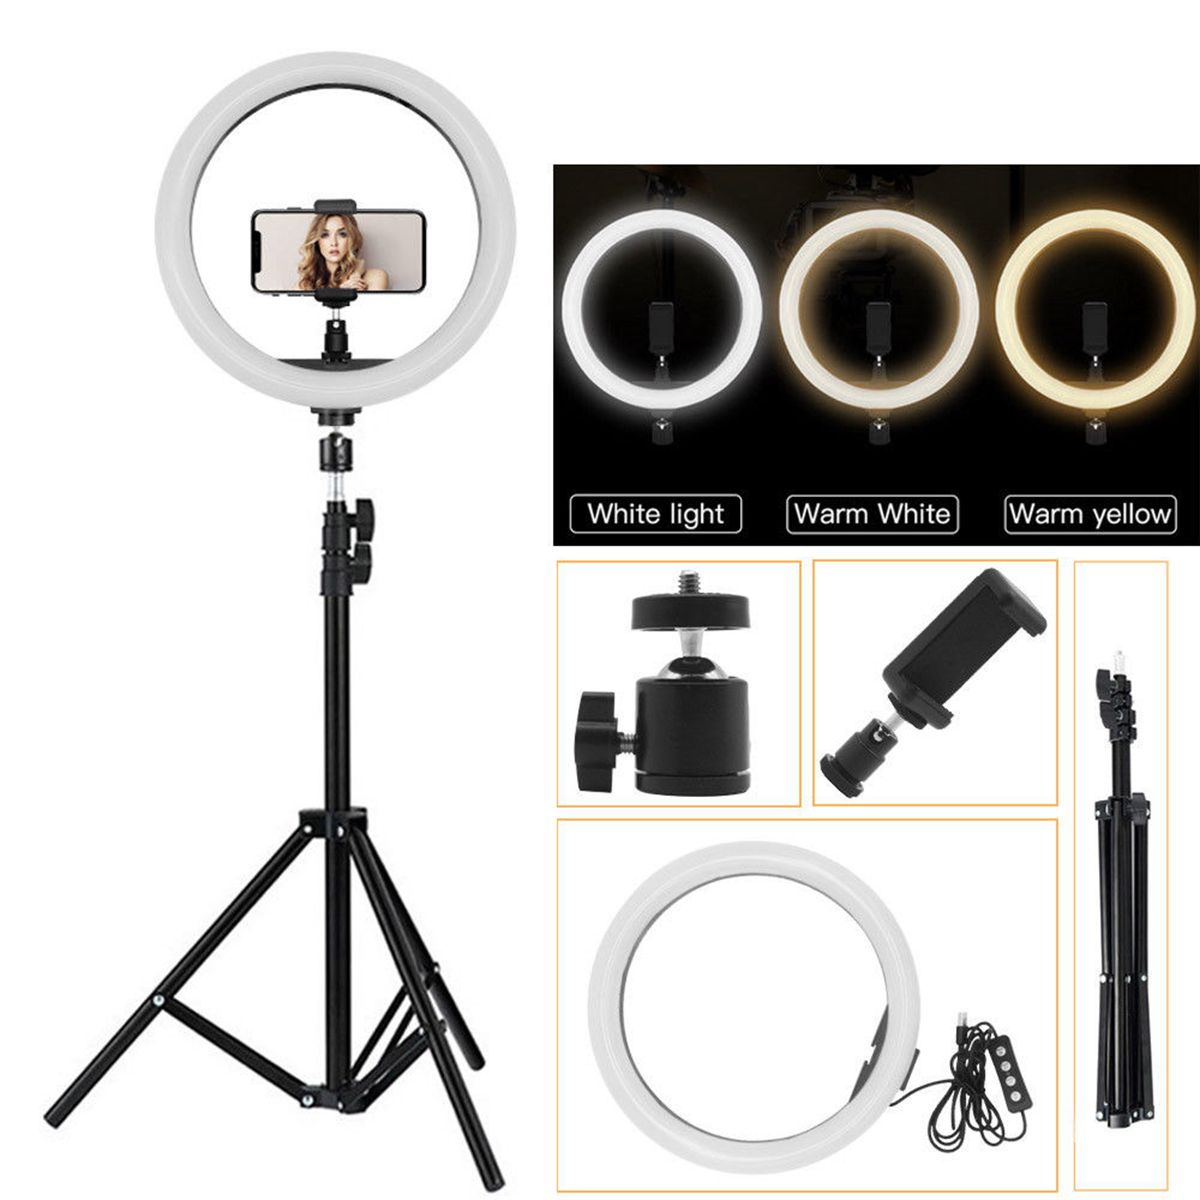 10 Inch Dimmable LED Ring Light Tripod USB Port Phone Camera Photo Selfie Live Light Stand Stepless Adjustment Fill Lights